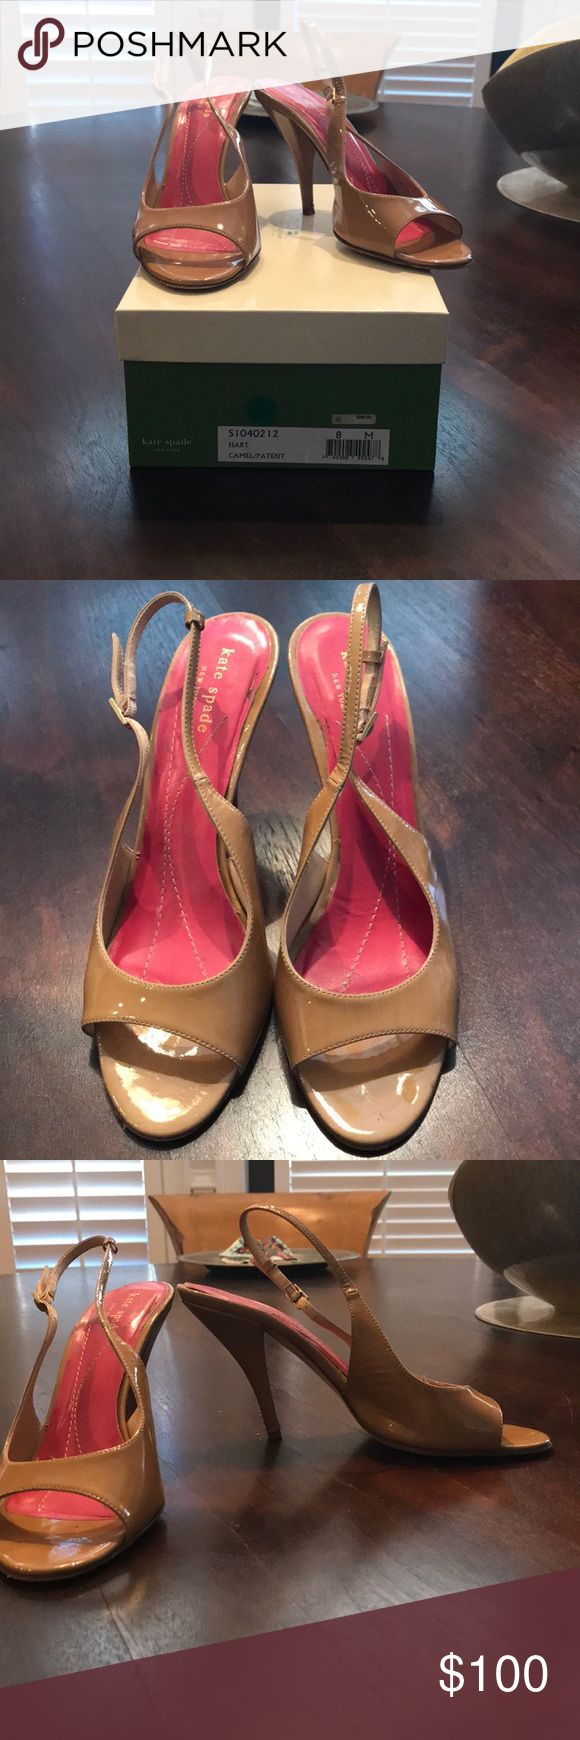 Kate Spade patent Hart Heels in Camel Gently worn Kate Spade patent hart strappy heels in camel/ nude. The heels show wear but could easily be fixed. A very classic style! Comes with original box kate spade Shoes Heels